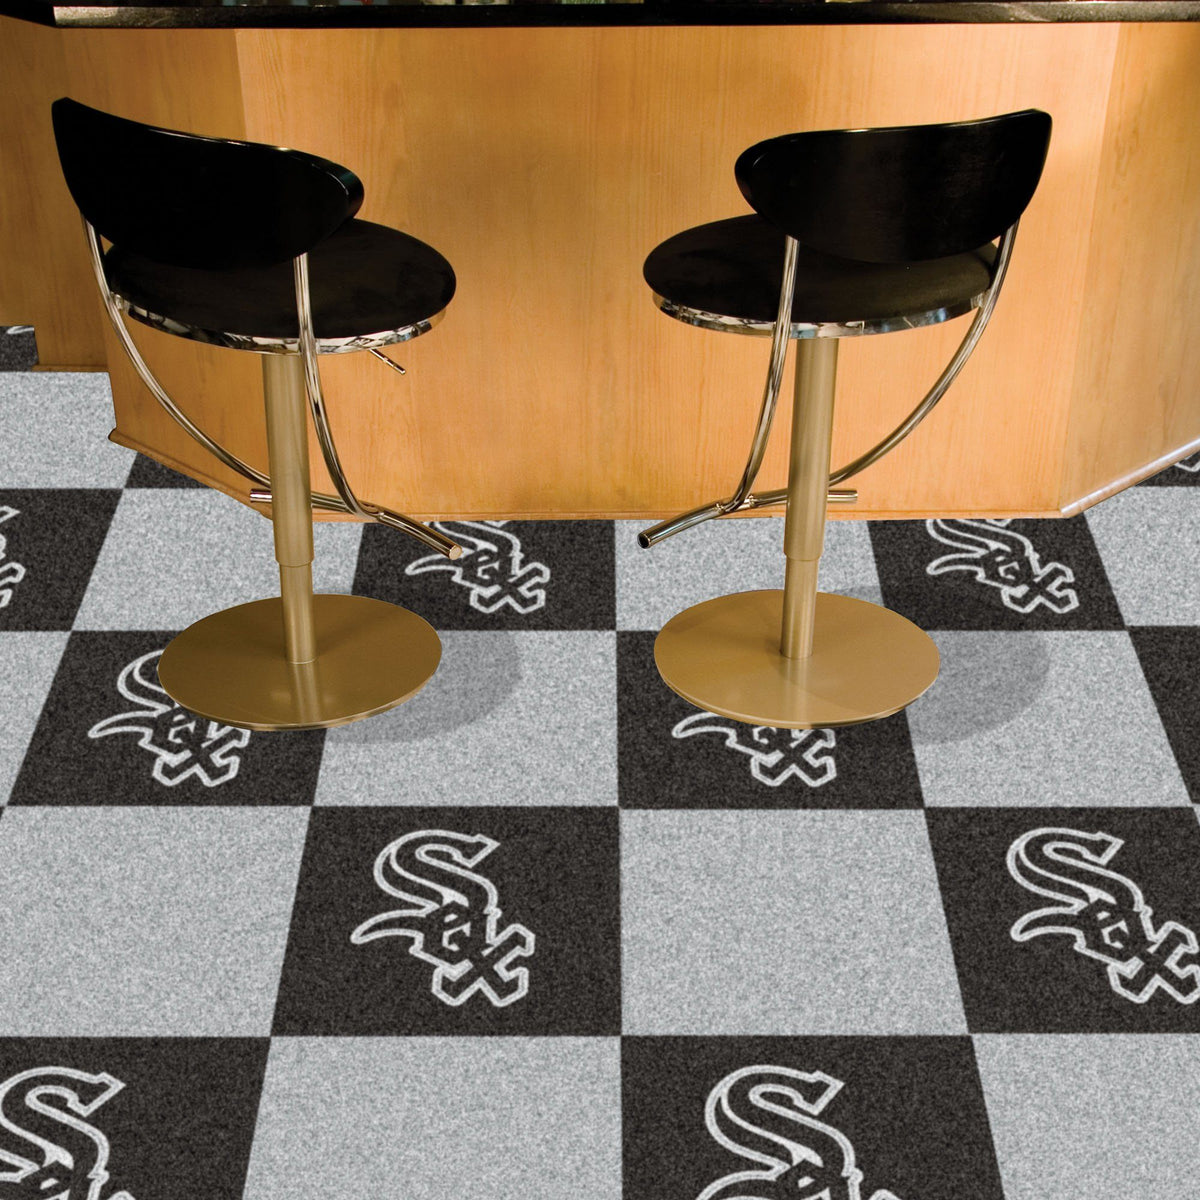 MLB - Team Carpet Tiles MLB Mats, Carpet Tile Flooring, Team Carpet Tiles, MLB, Home Fan Mats Chicago White Sox